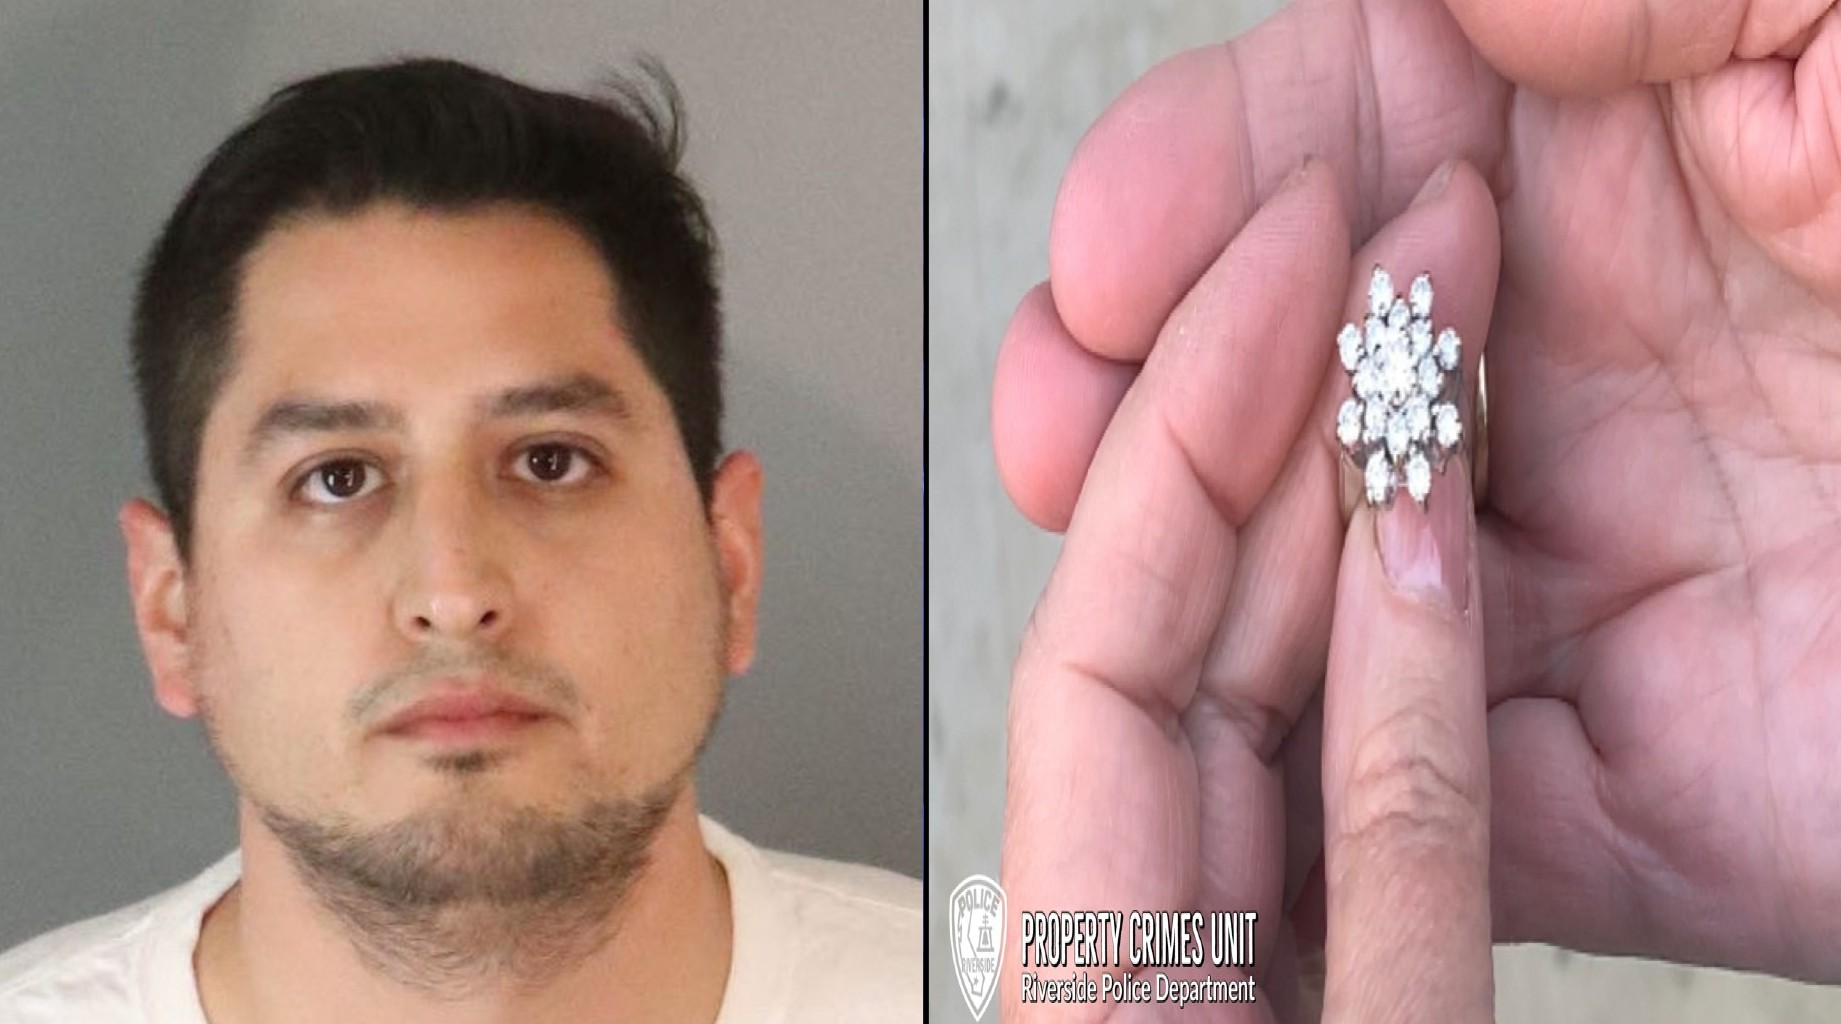 Mark Anthony Zuniga, 27, appears in a booking photo. On the right is a ring Zuniga is suspected of stealing from a deceased woman's body. These photos were released by the Riverside Police Department on Dec. 3, 2020.